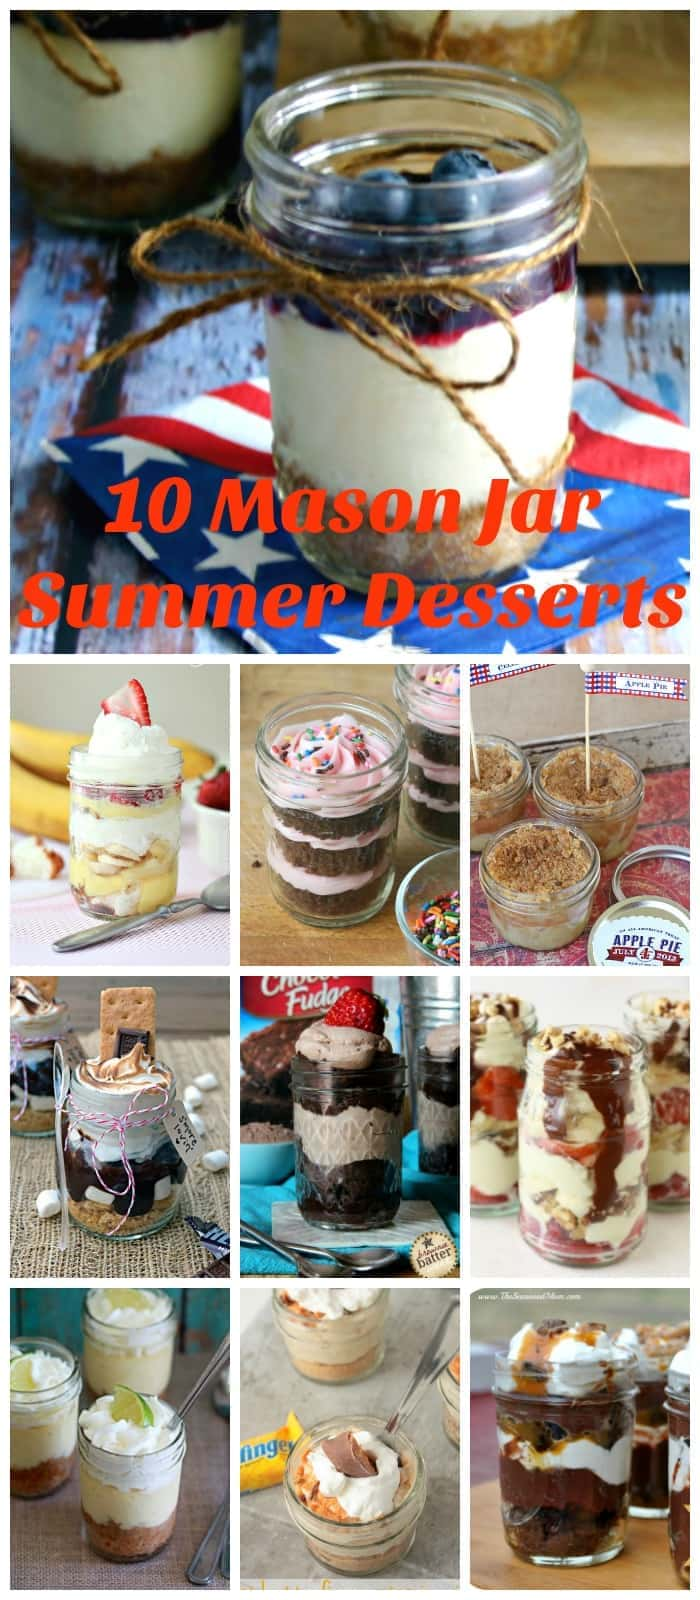 10 Mason Jar Summer Desserts | Life, Love, and Good Food